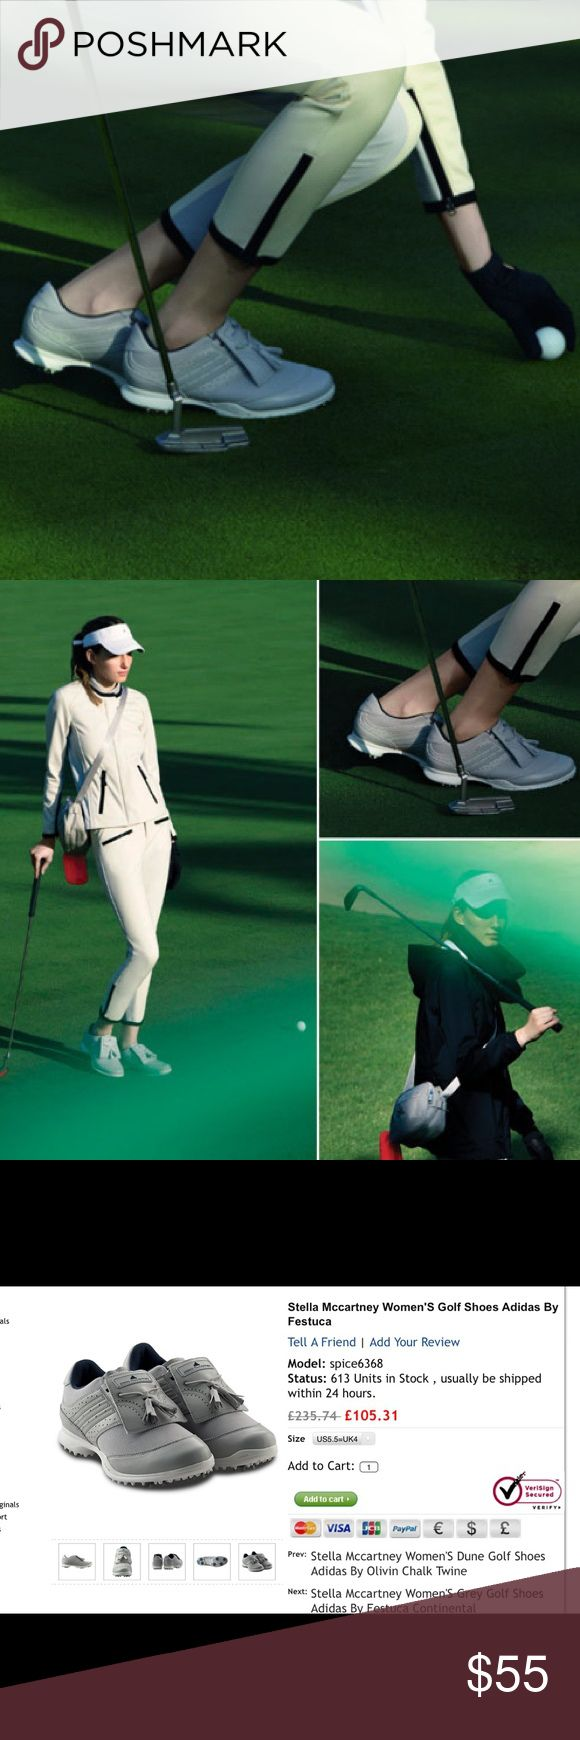 Stella MacCartney Women's Golf Adidas shoes By festuca 🌻In great condition Adidas by Stella McCartney Shoes Athletic Shoes